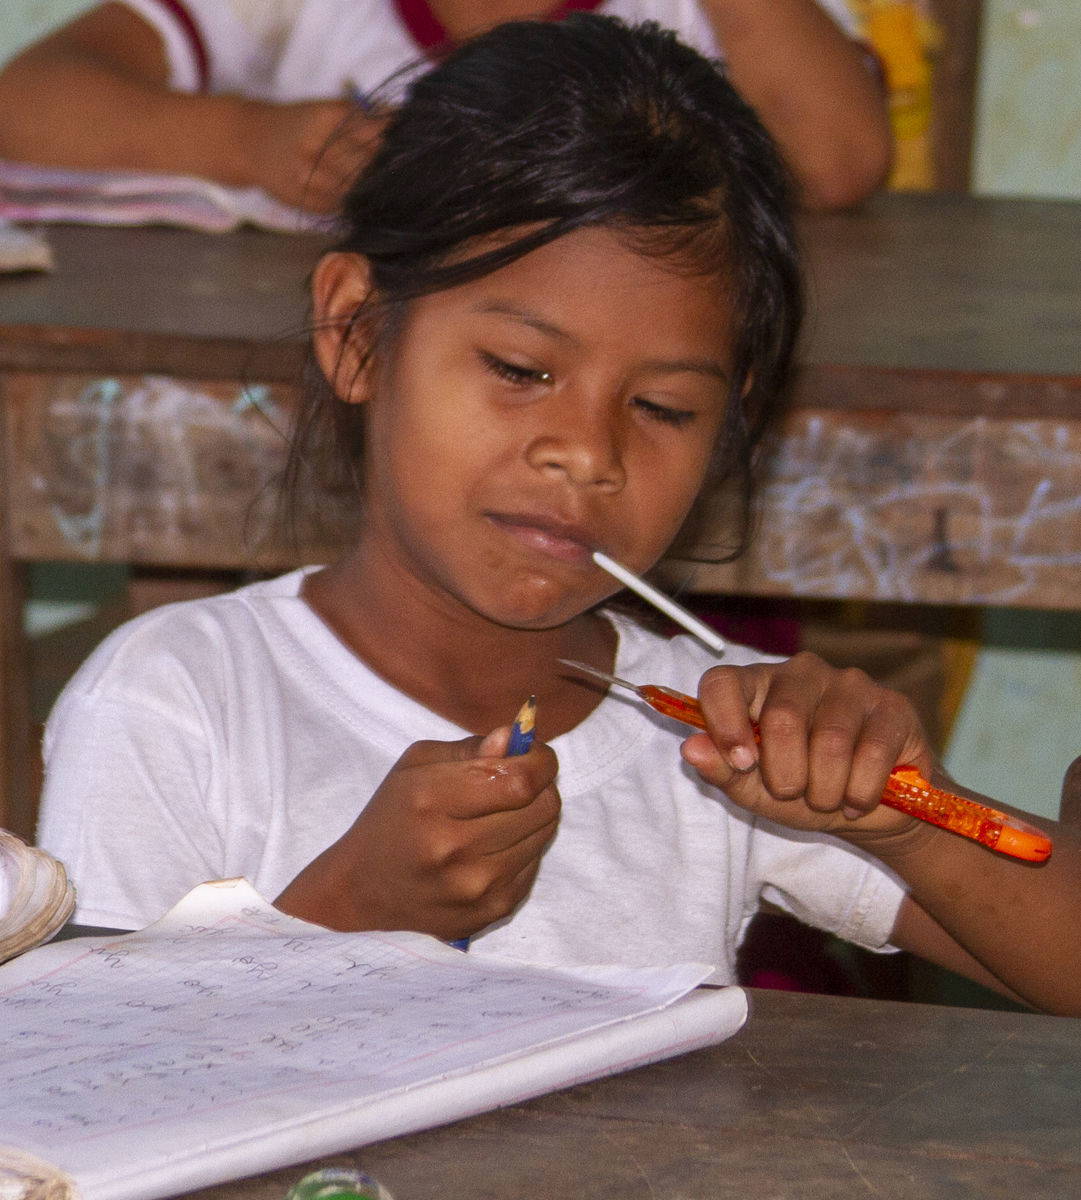 Girl sharpens pencil with blade